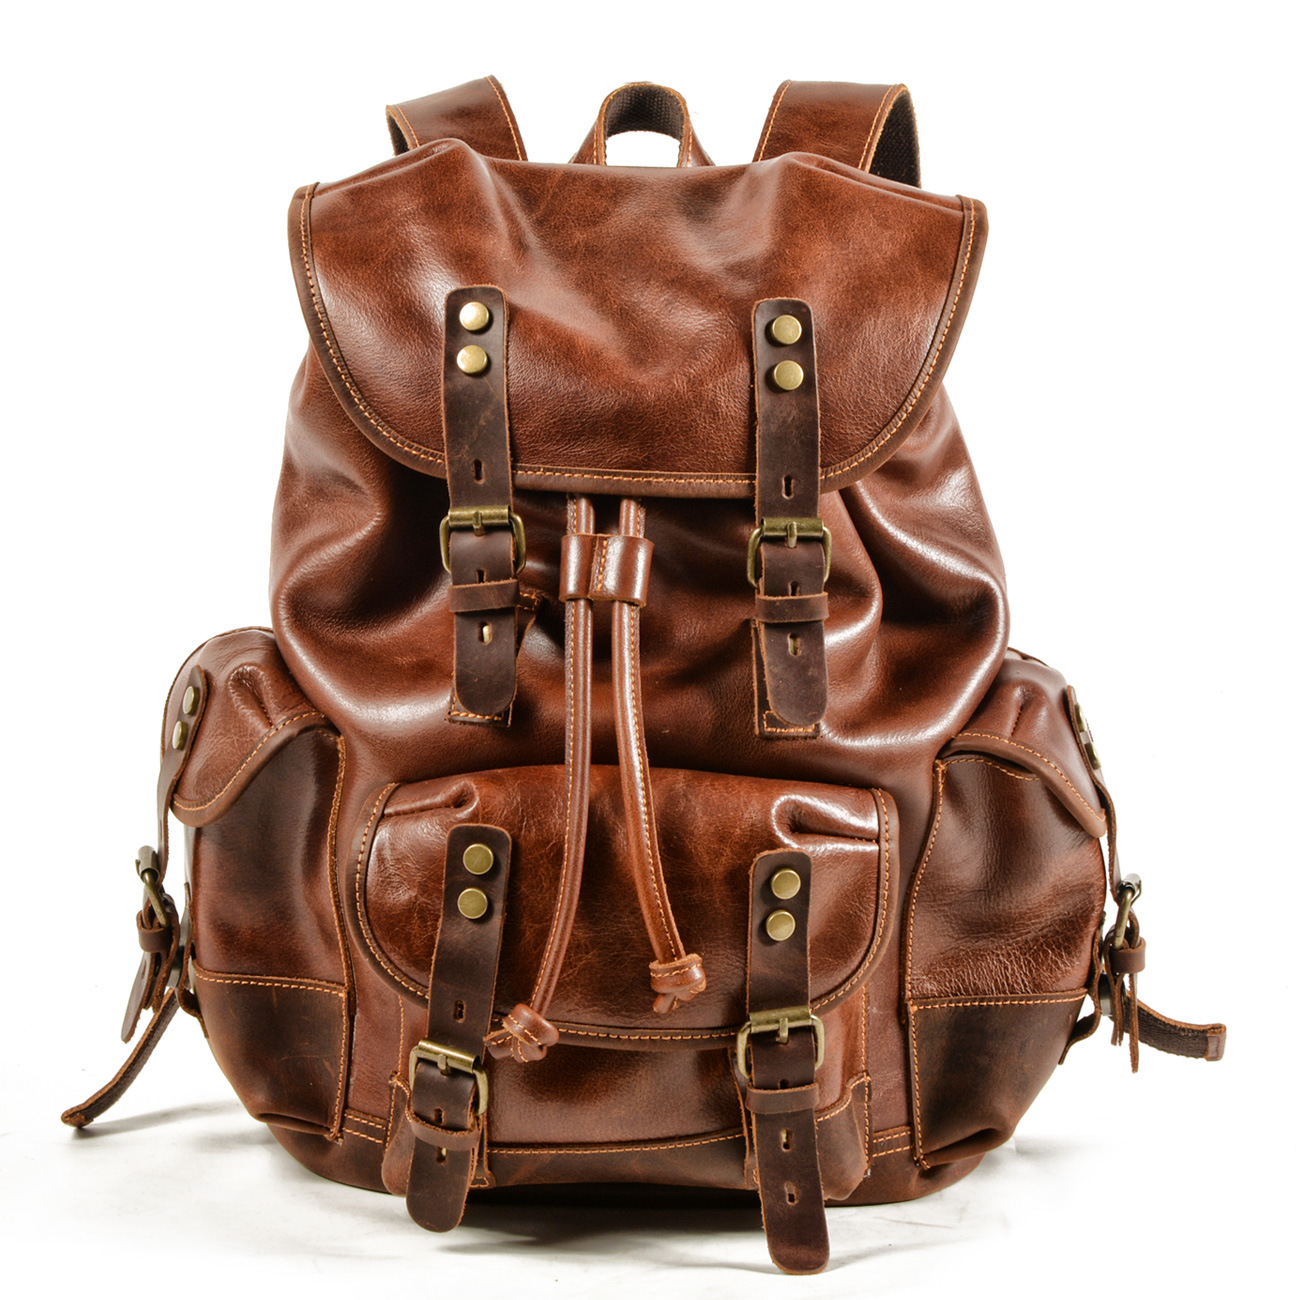 The New Genuine Leather Men Backpack  Outdoor Casual School Bag Large Capacity Backpack Genuine Leather Mountaineering Bag